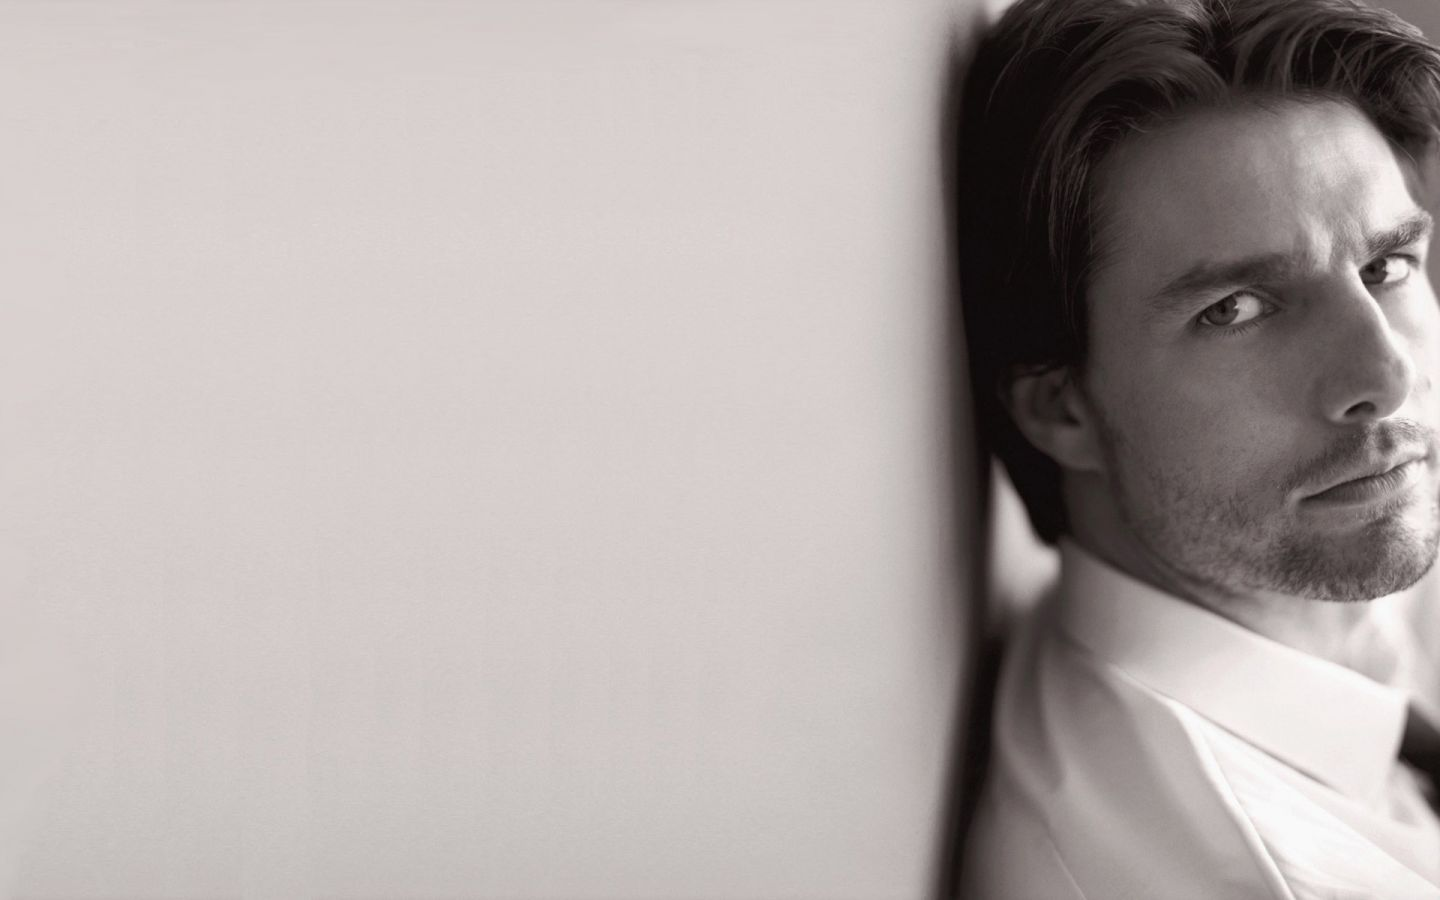 Tom Cruise Face By The Wall Wallpaper 1440x900